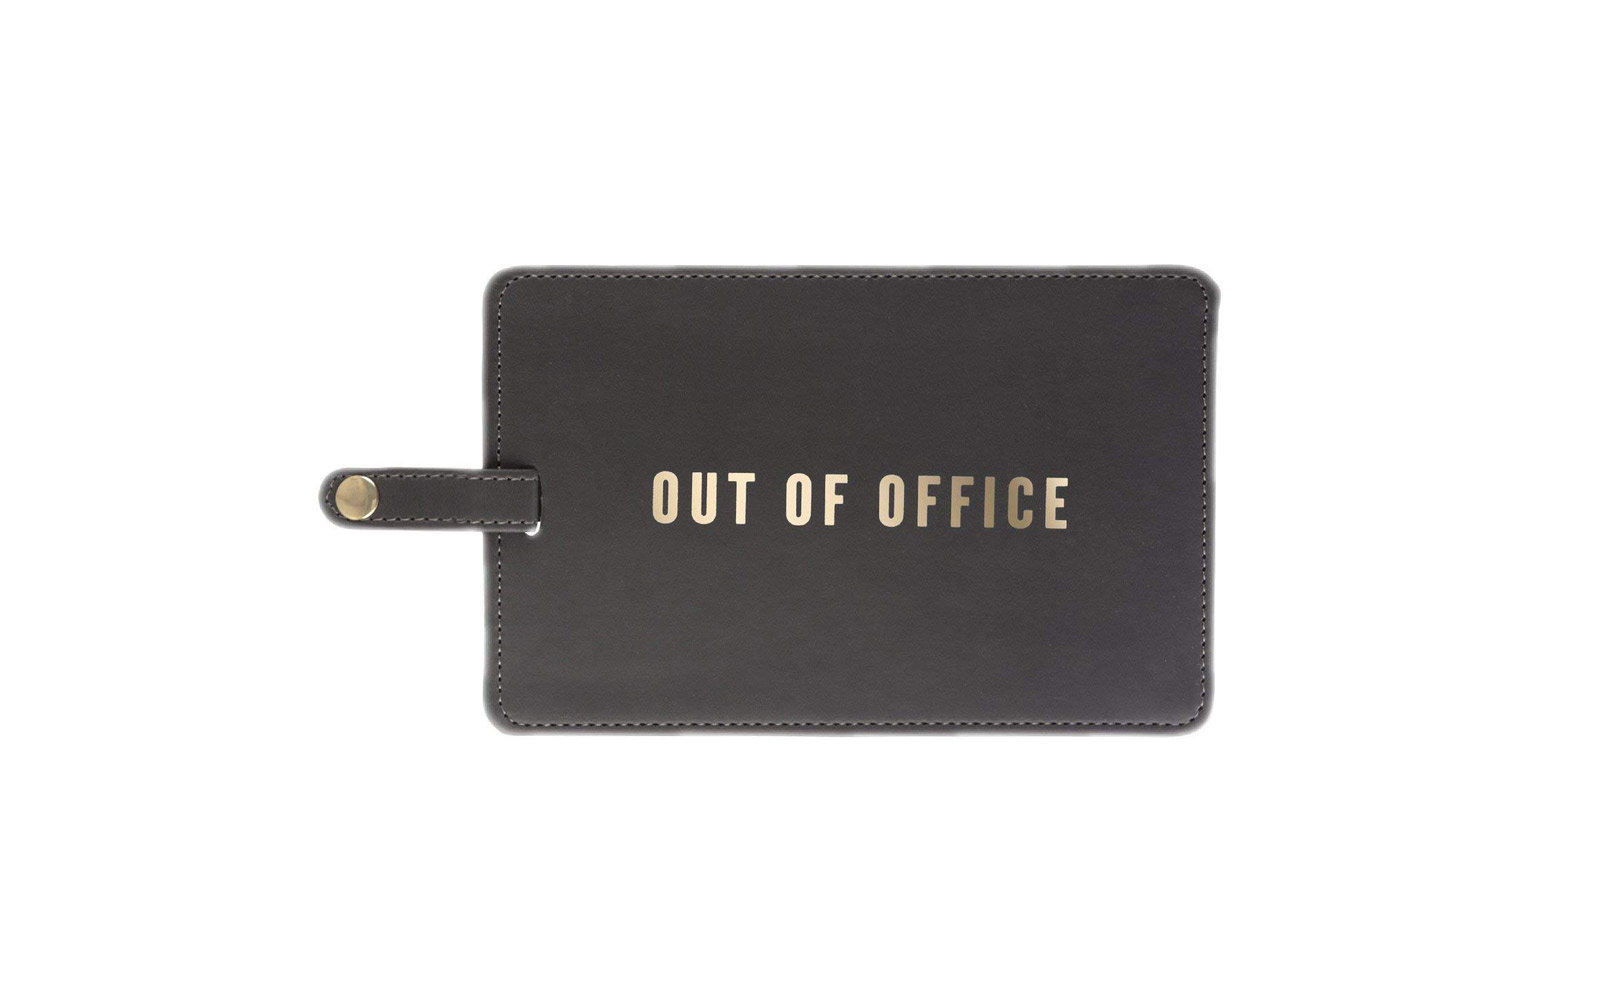 amazon out of office luggage tag